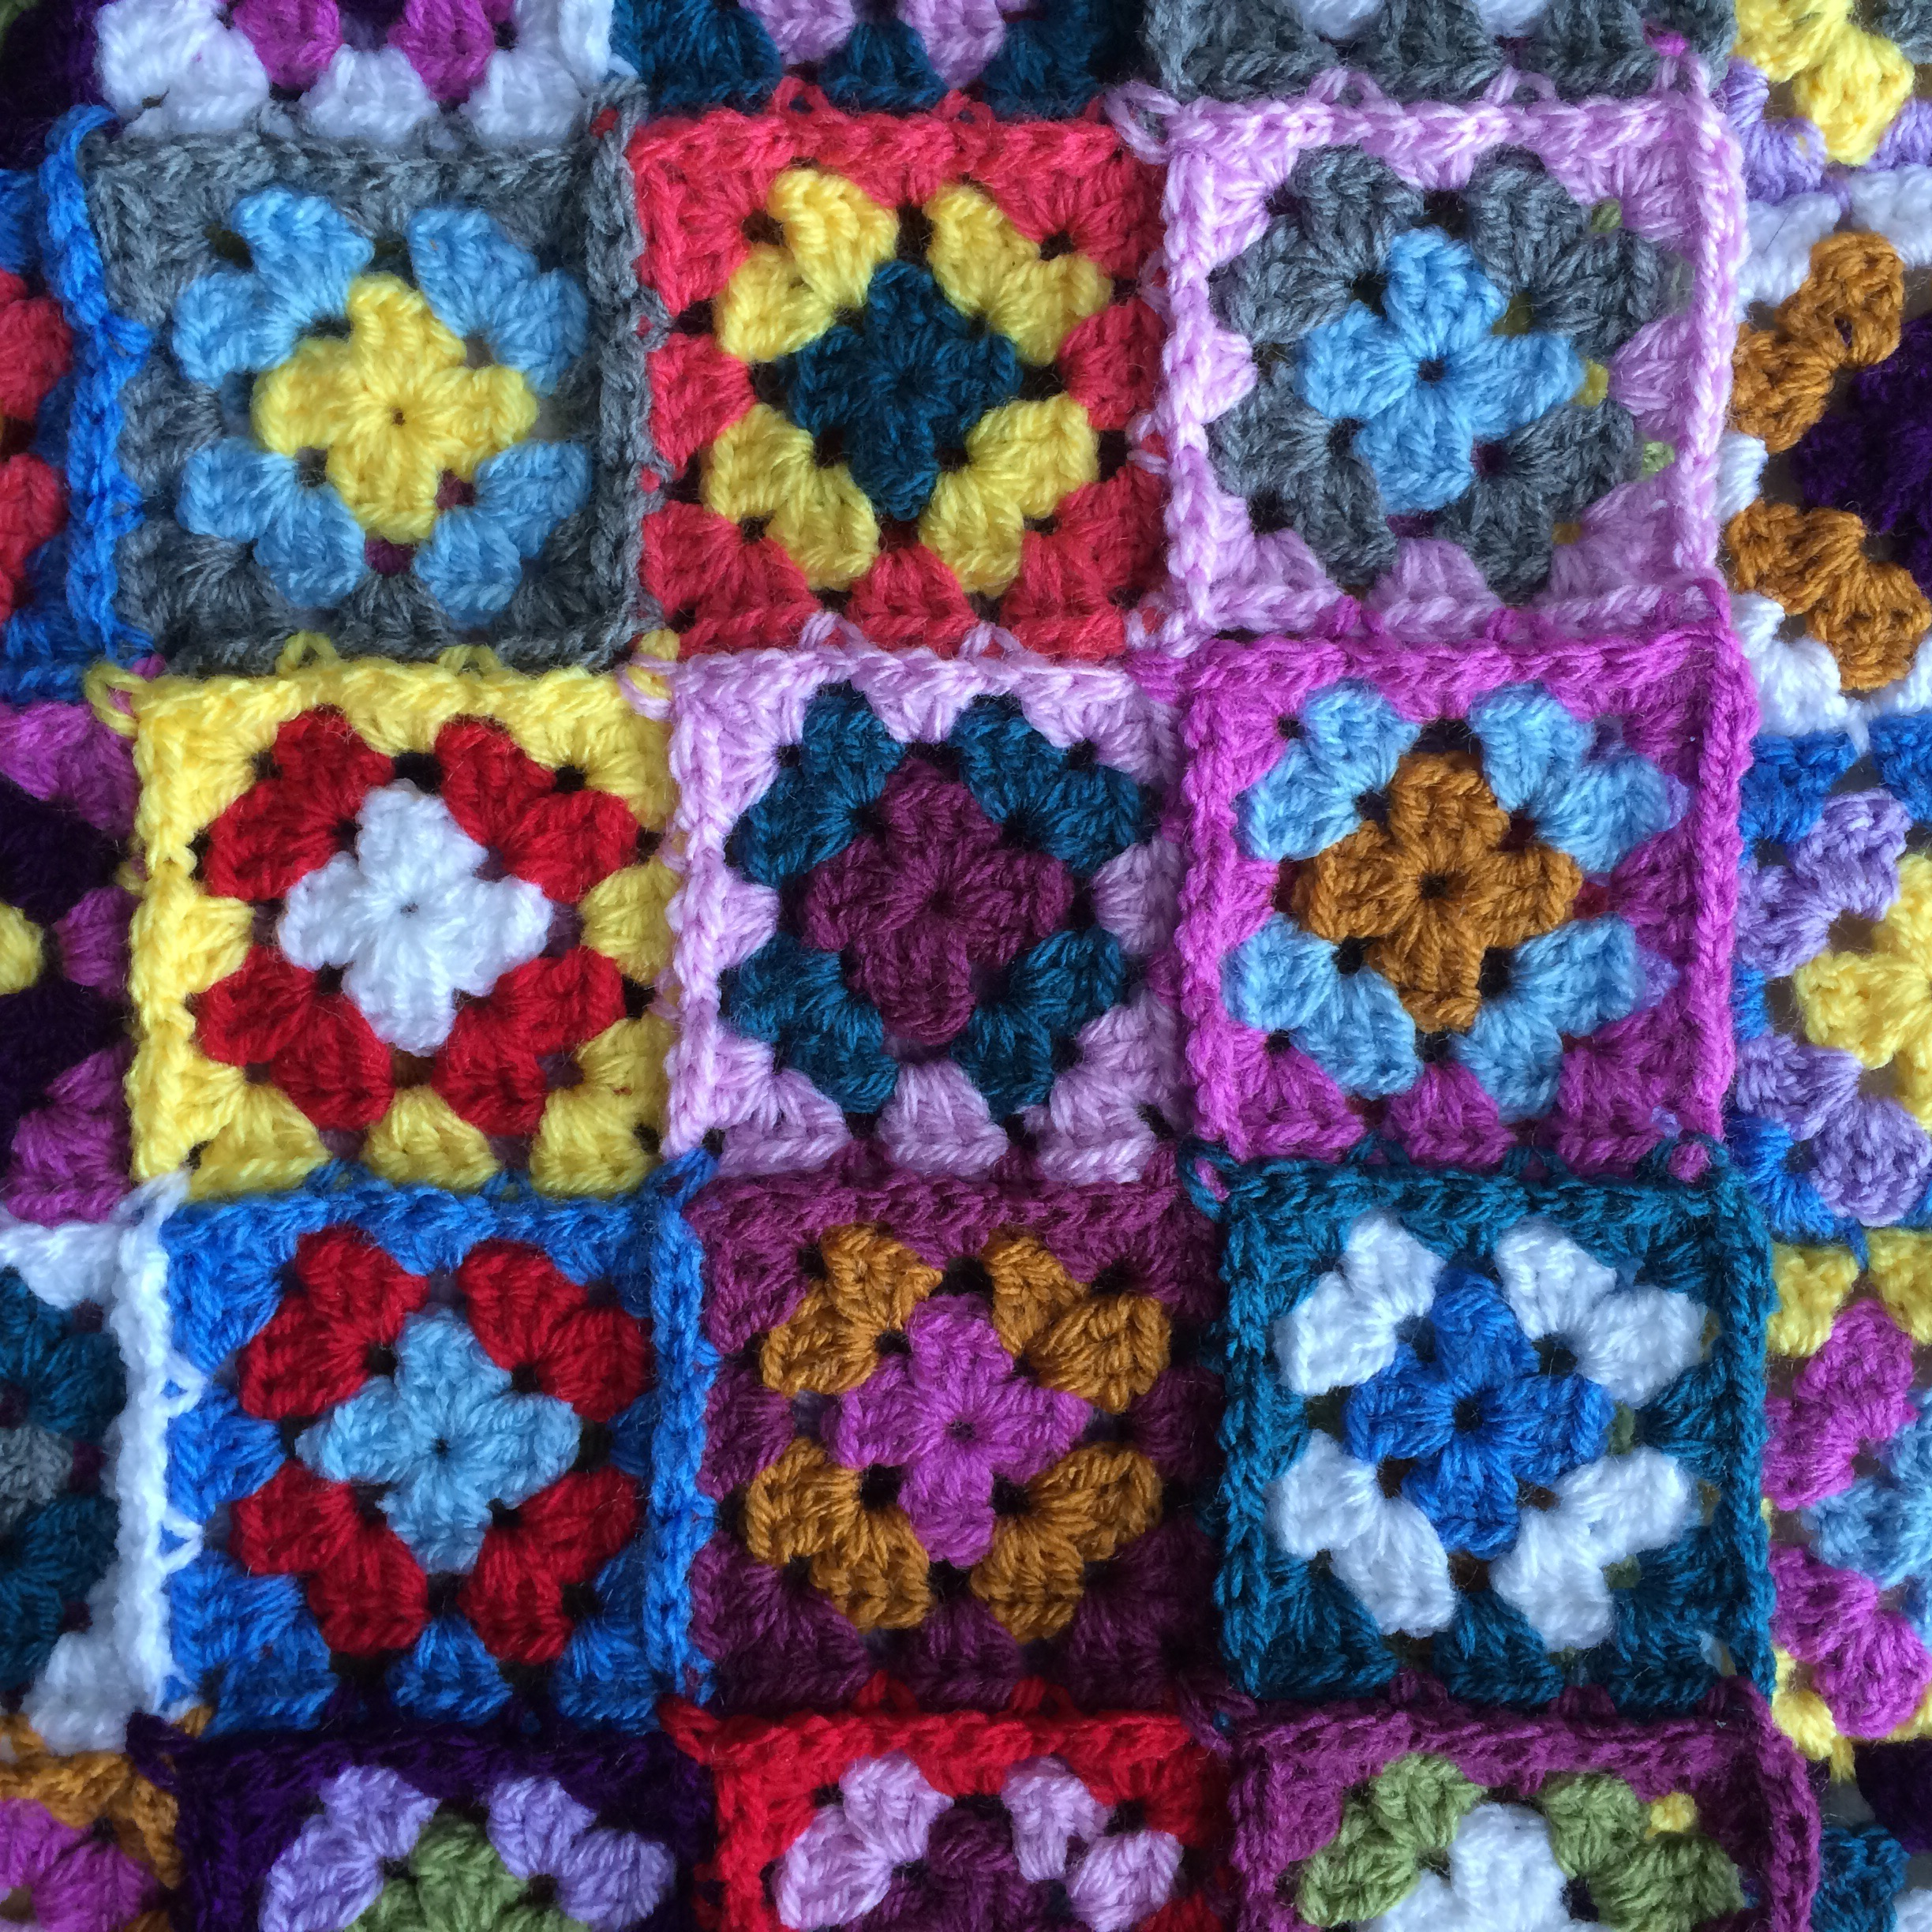 Granny Square Close Up | MyCraftyMusings